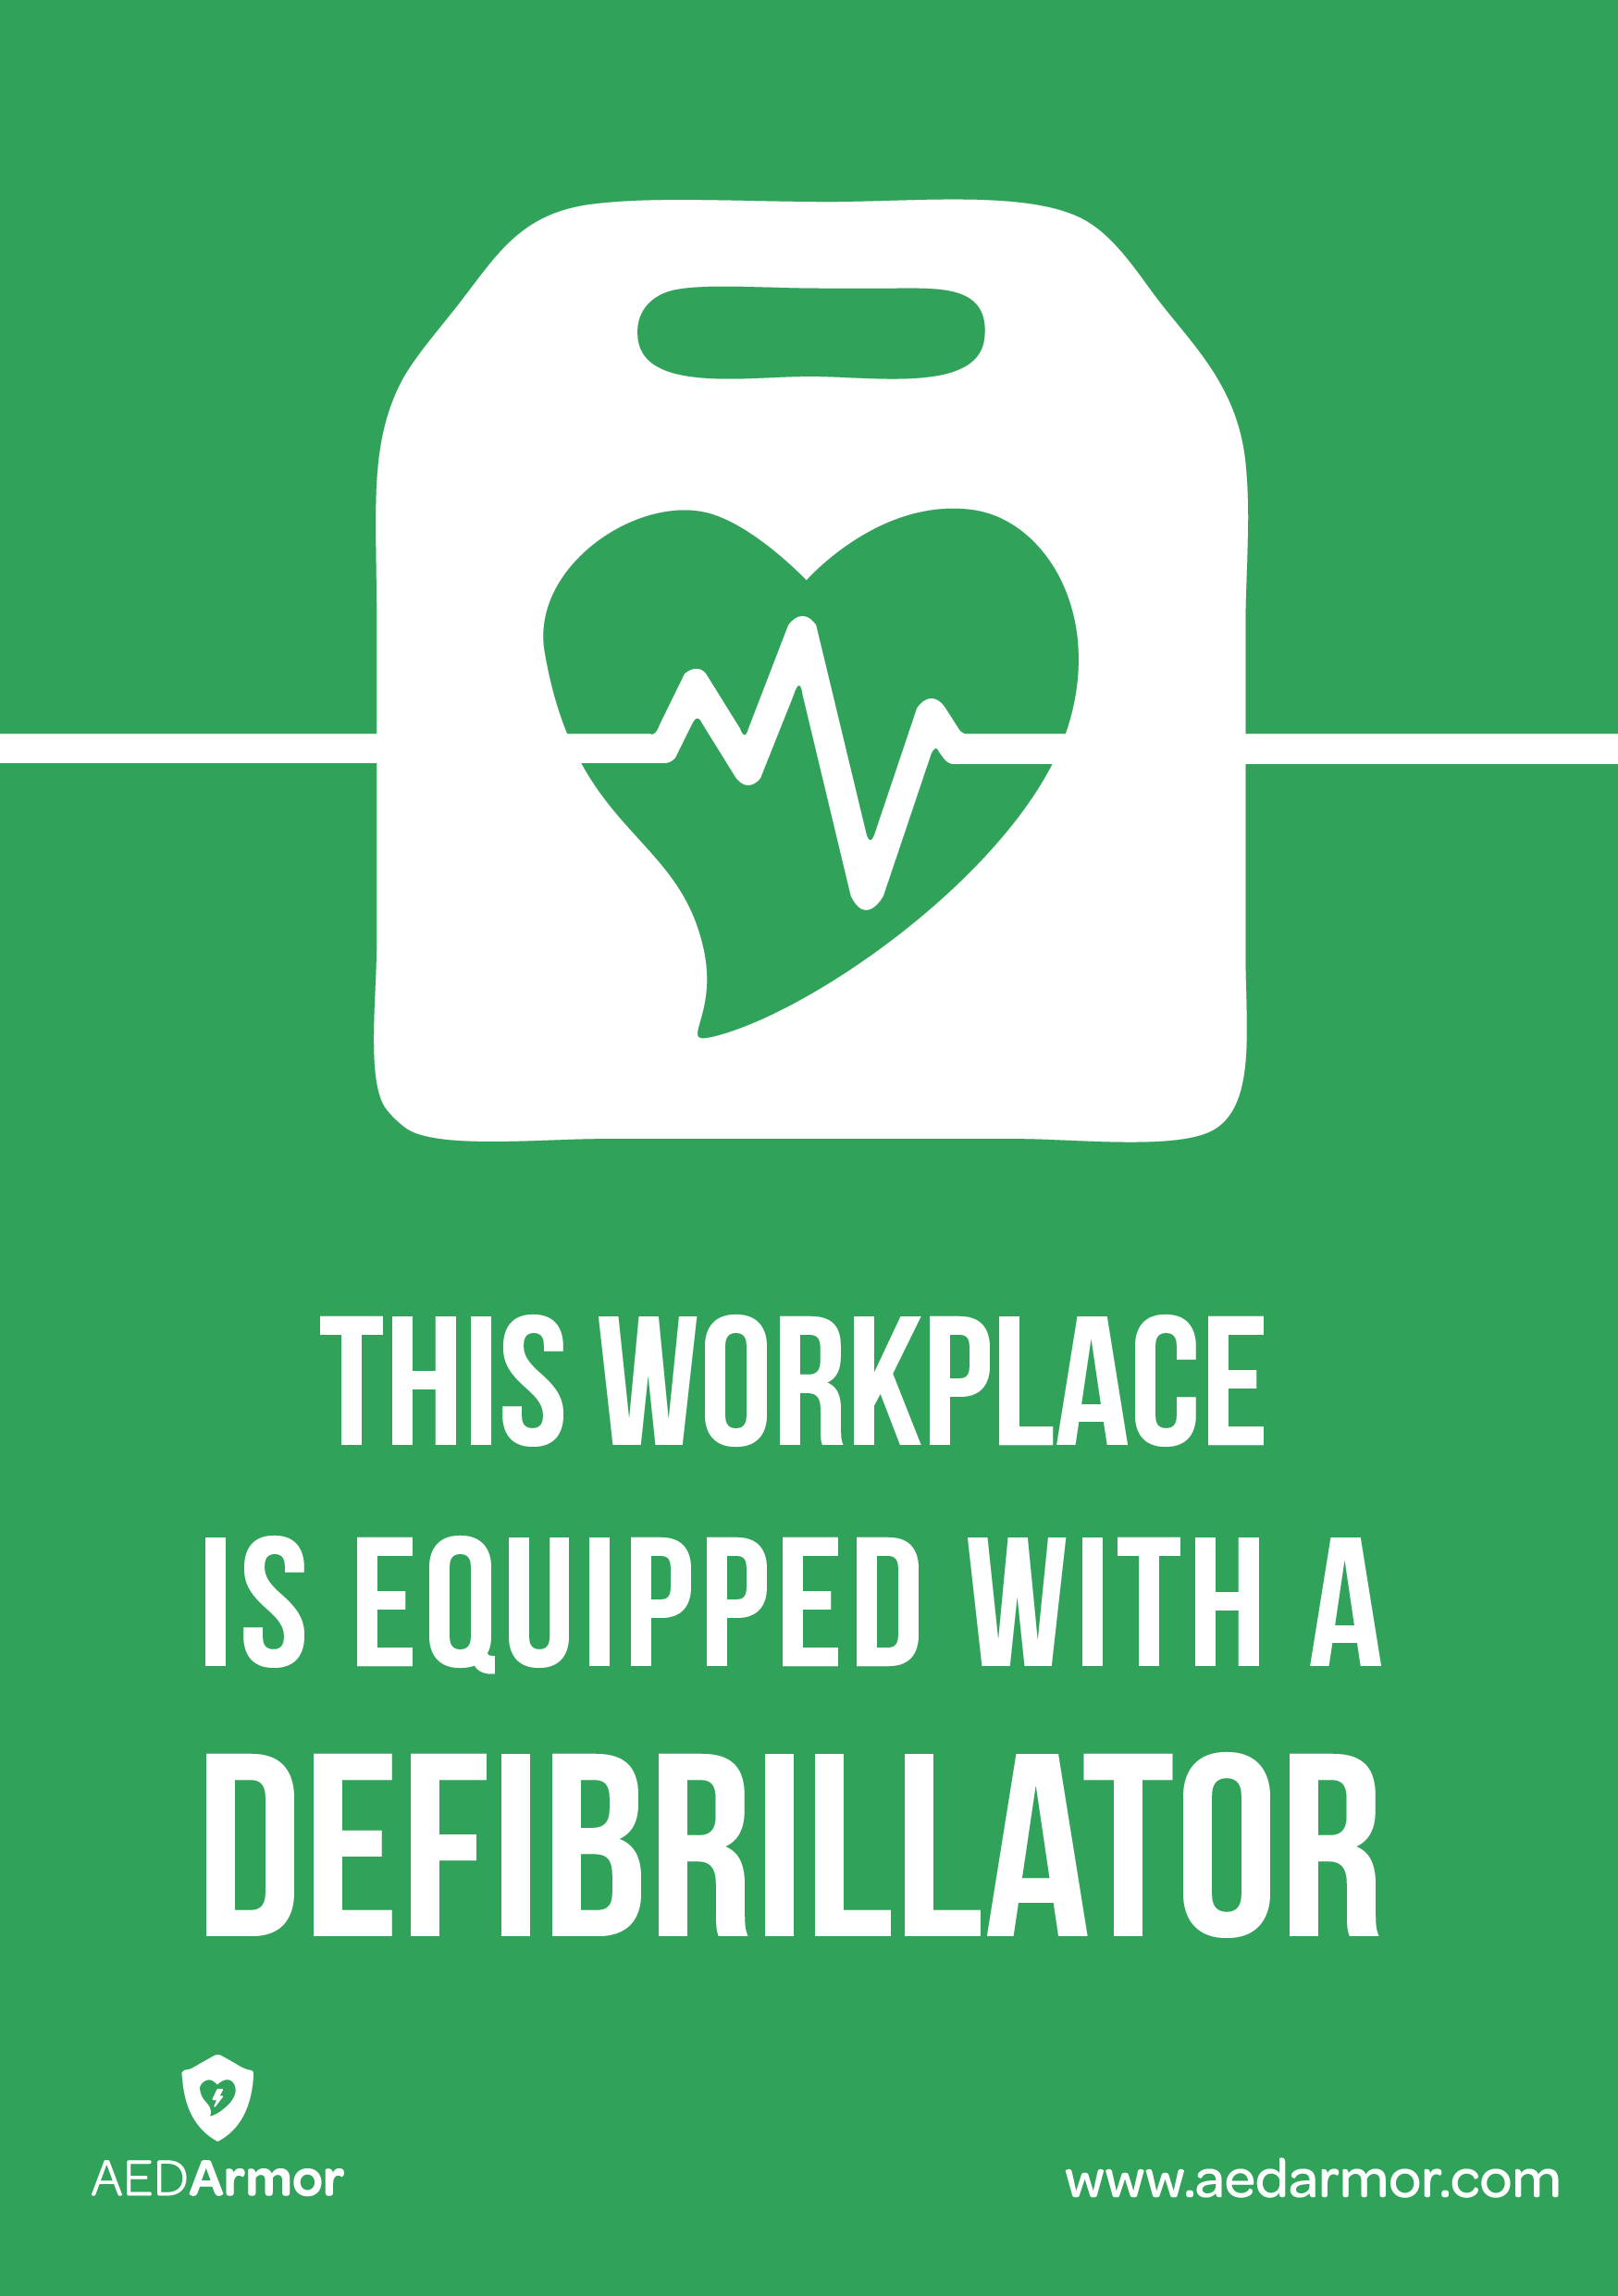 'This workplace is equipped with a defibrillator' A5 Sticker